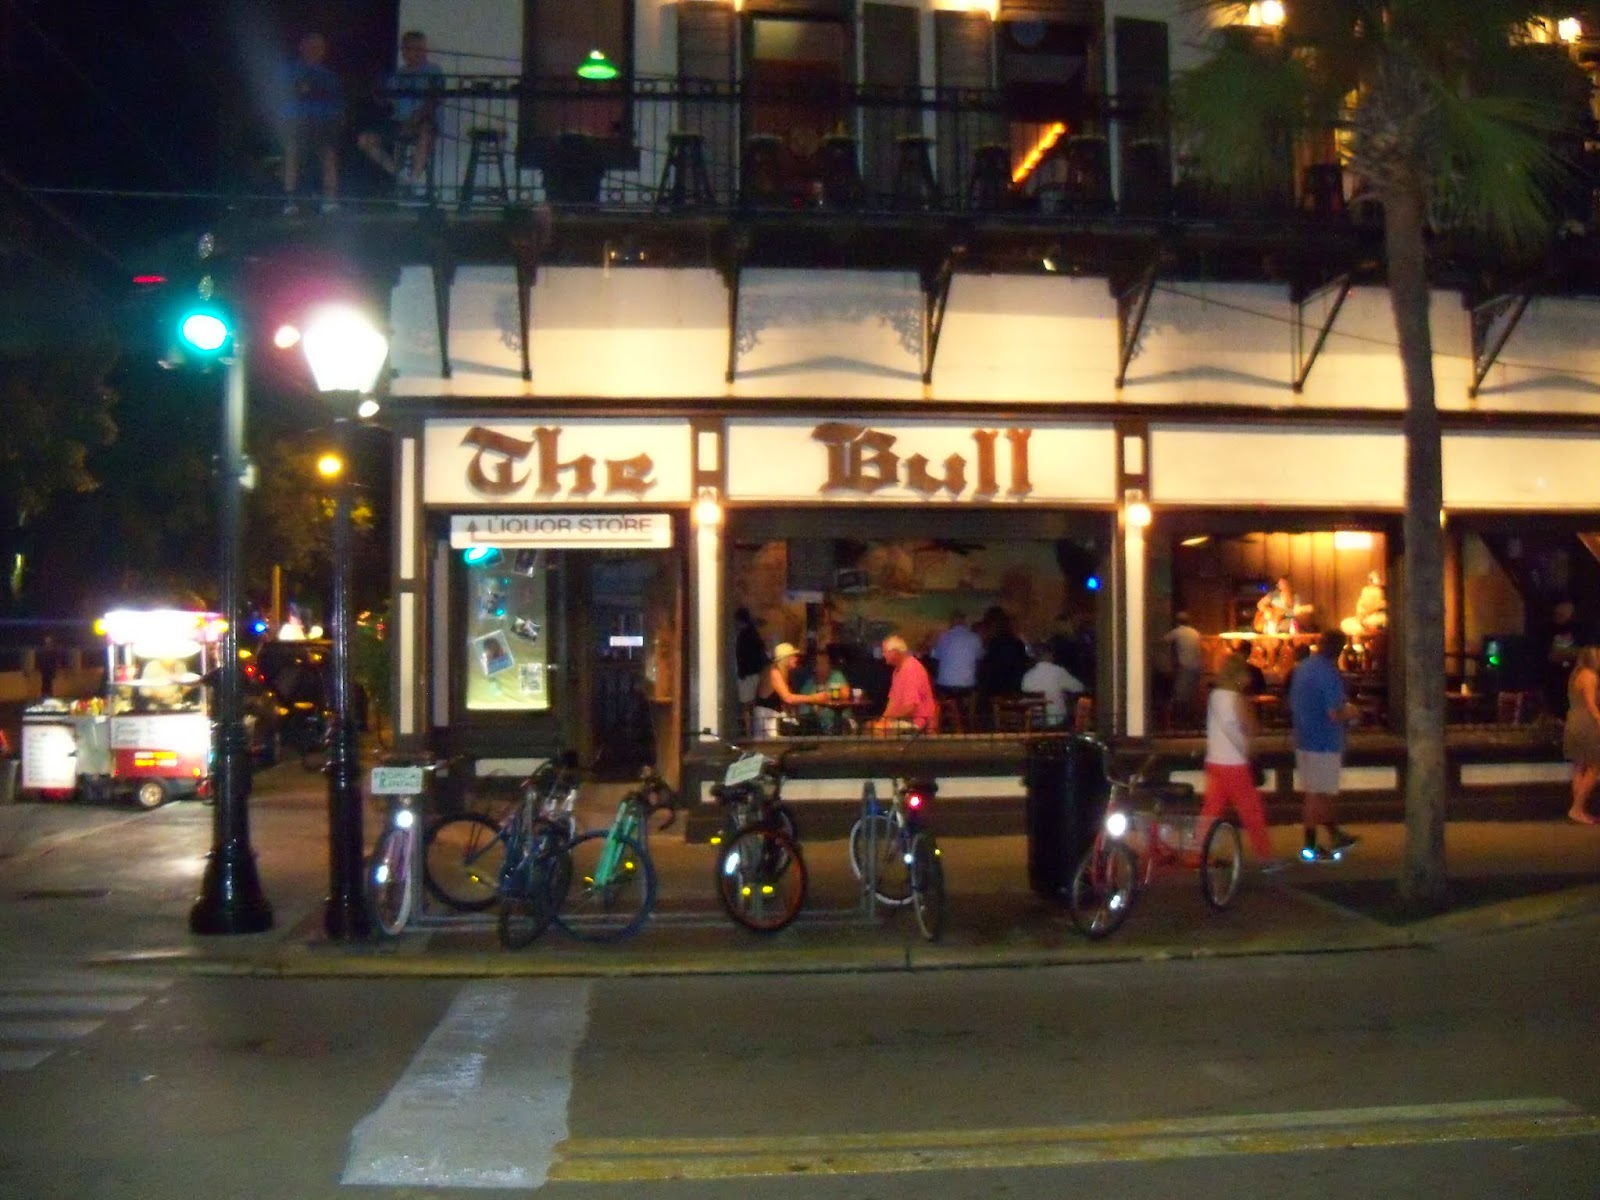 Key West Vacation - 116_5635.JPG